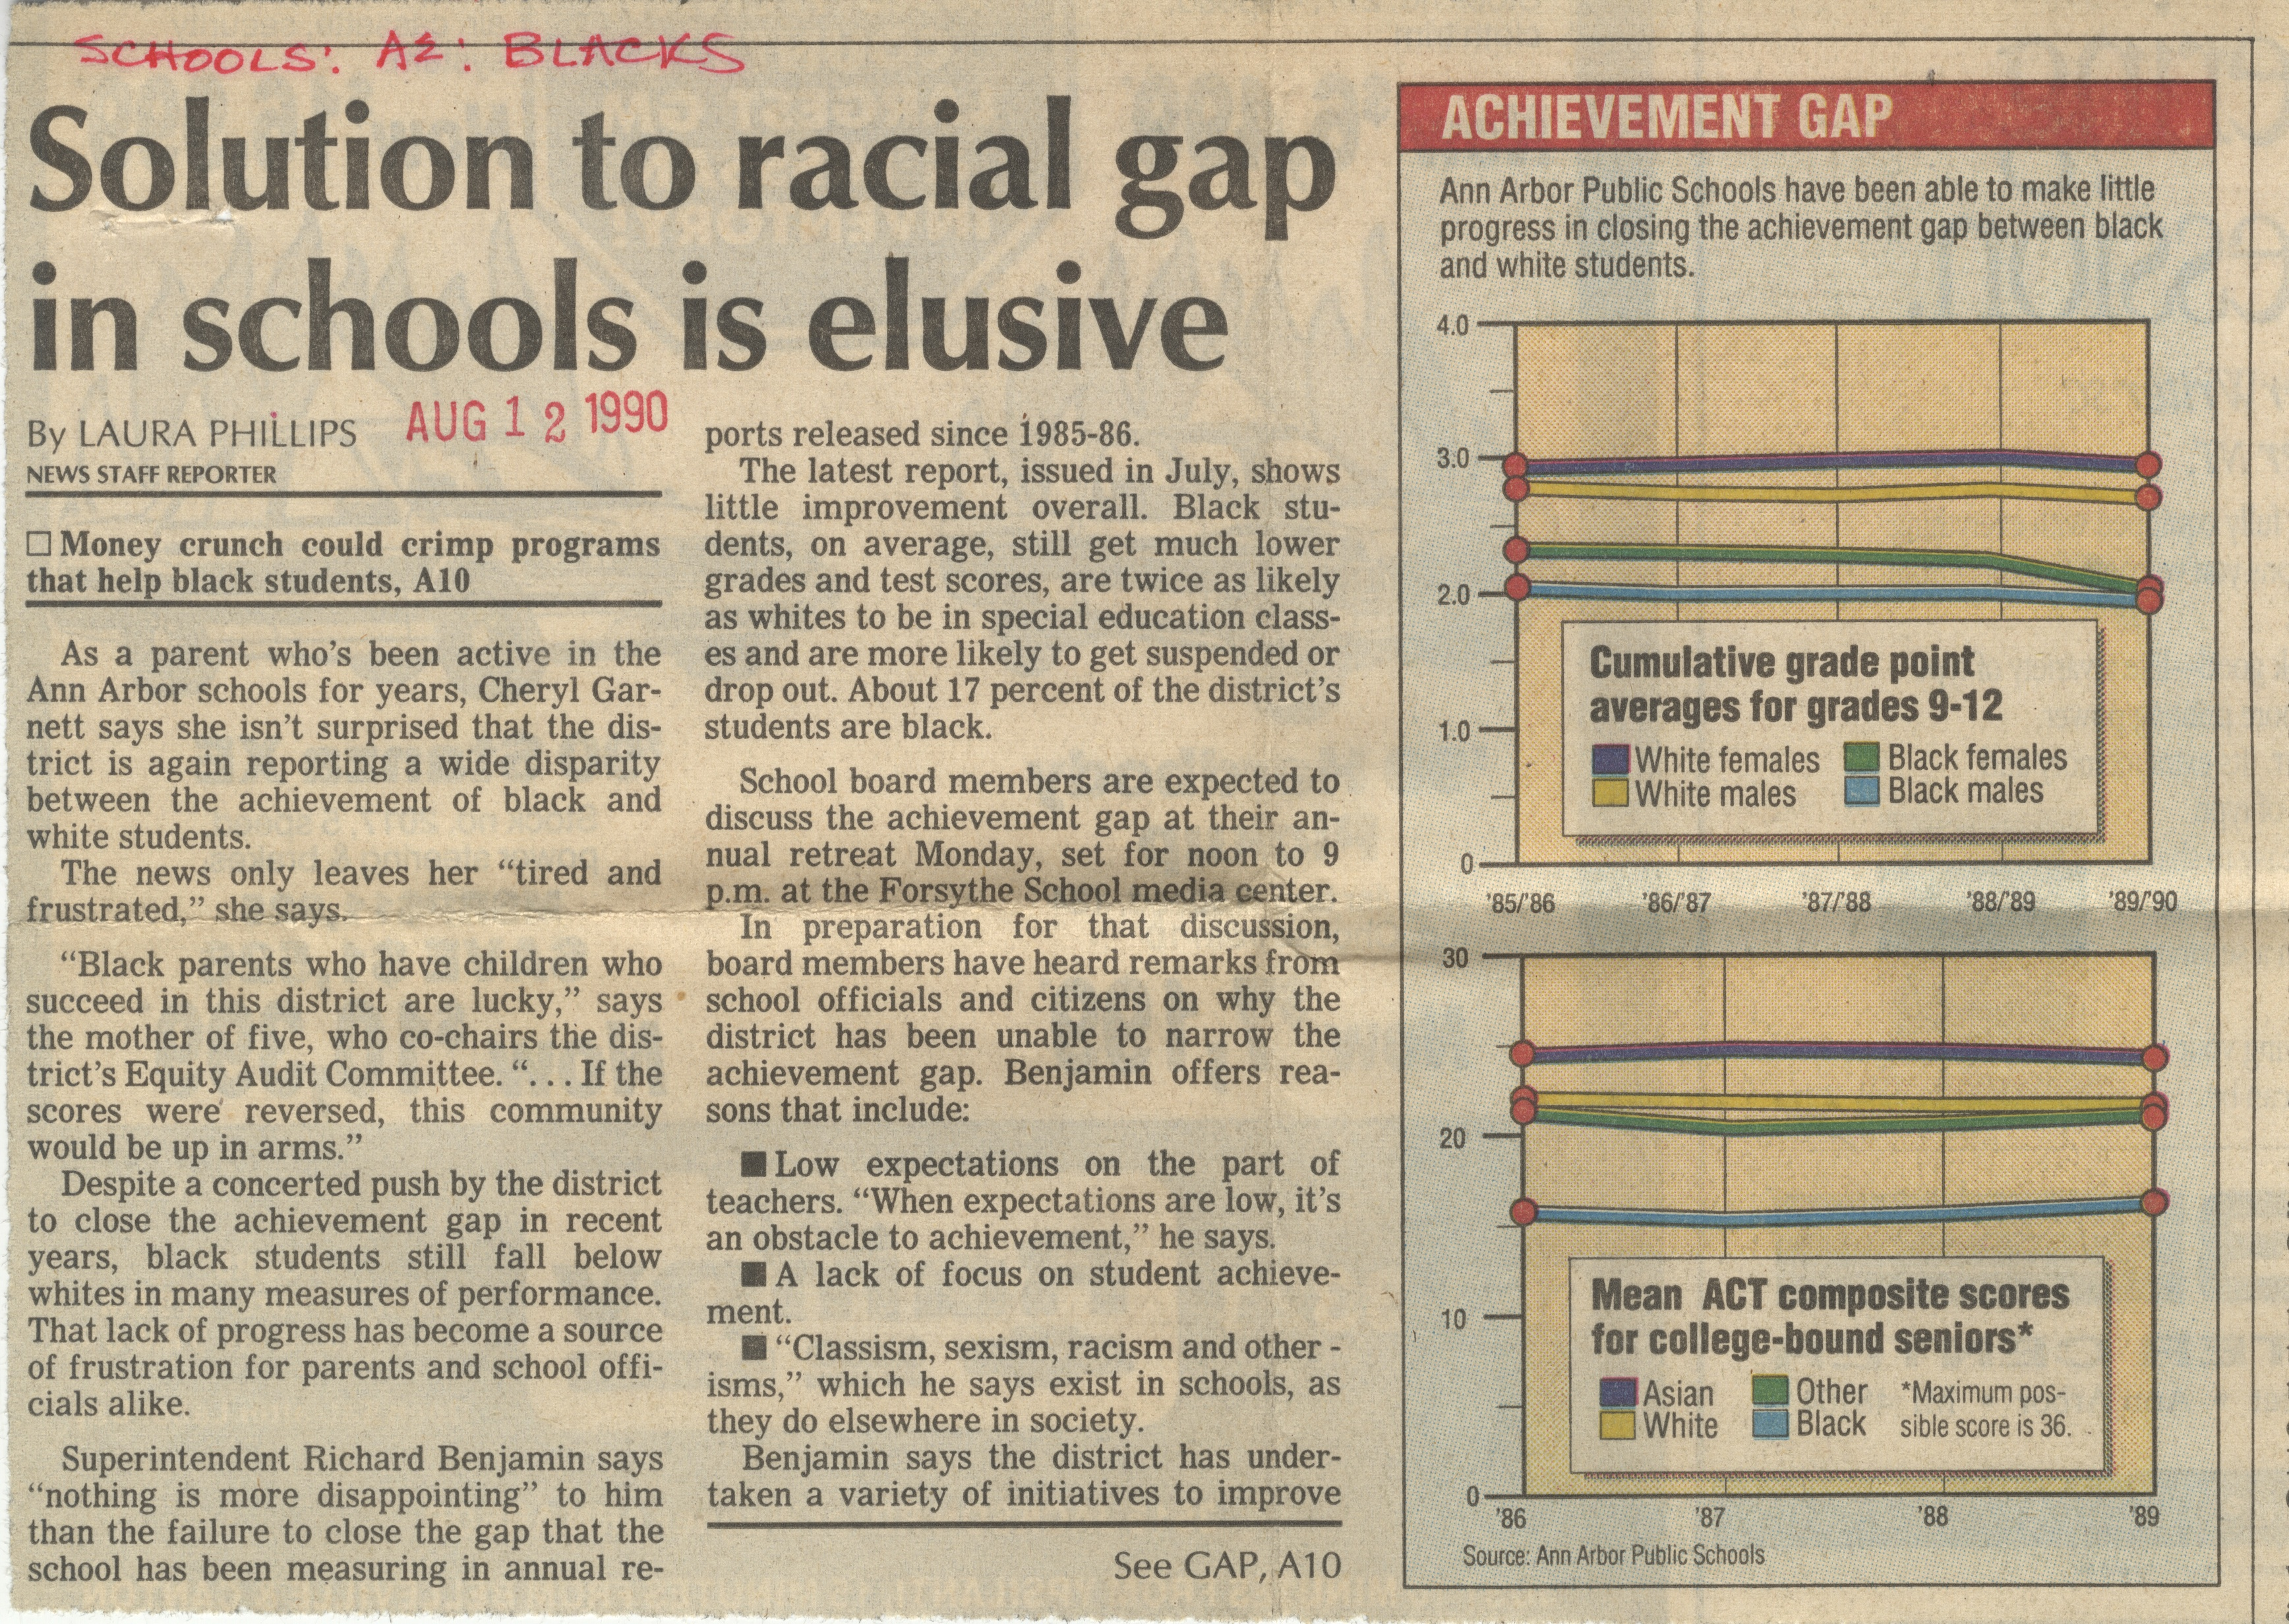 Solution To Racial Gap In Schools Is Elusive image